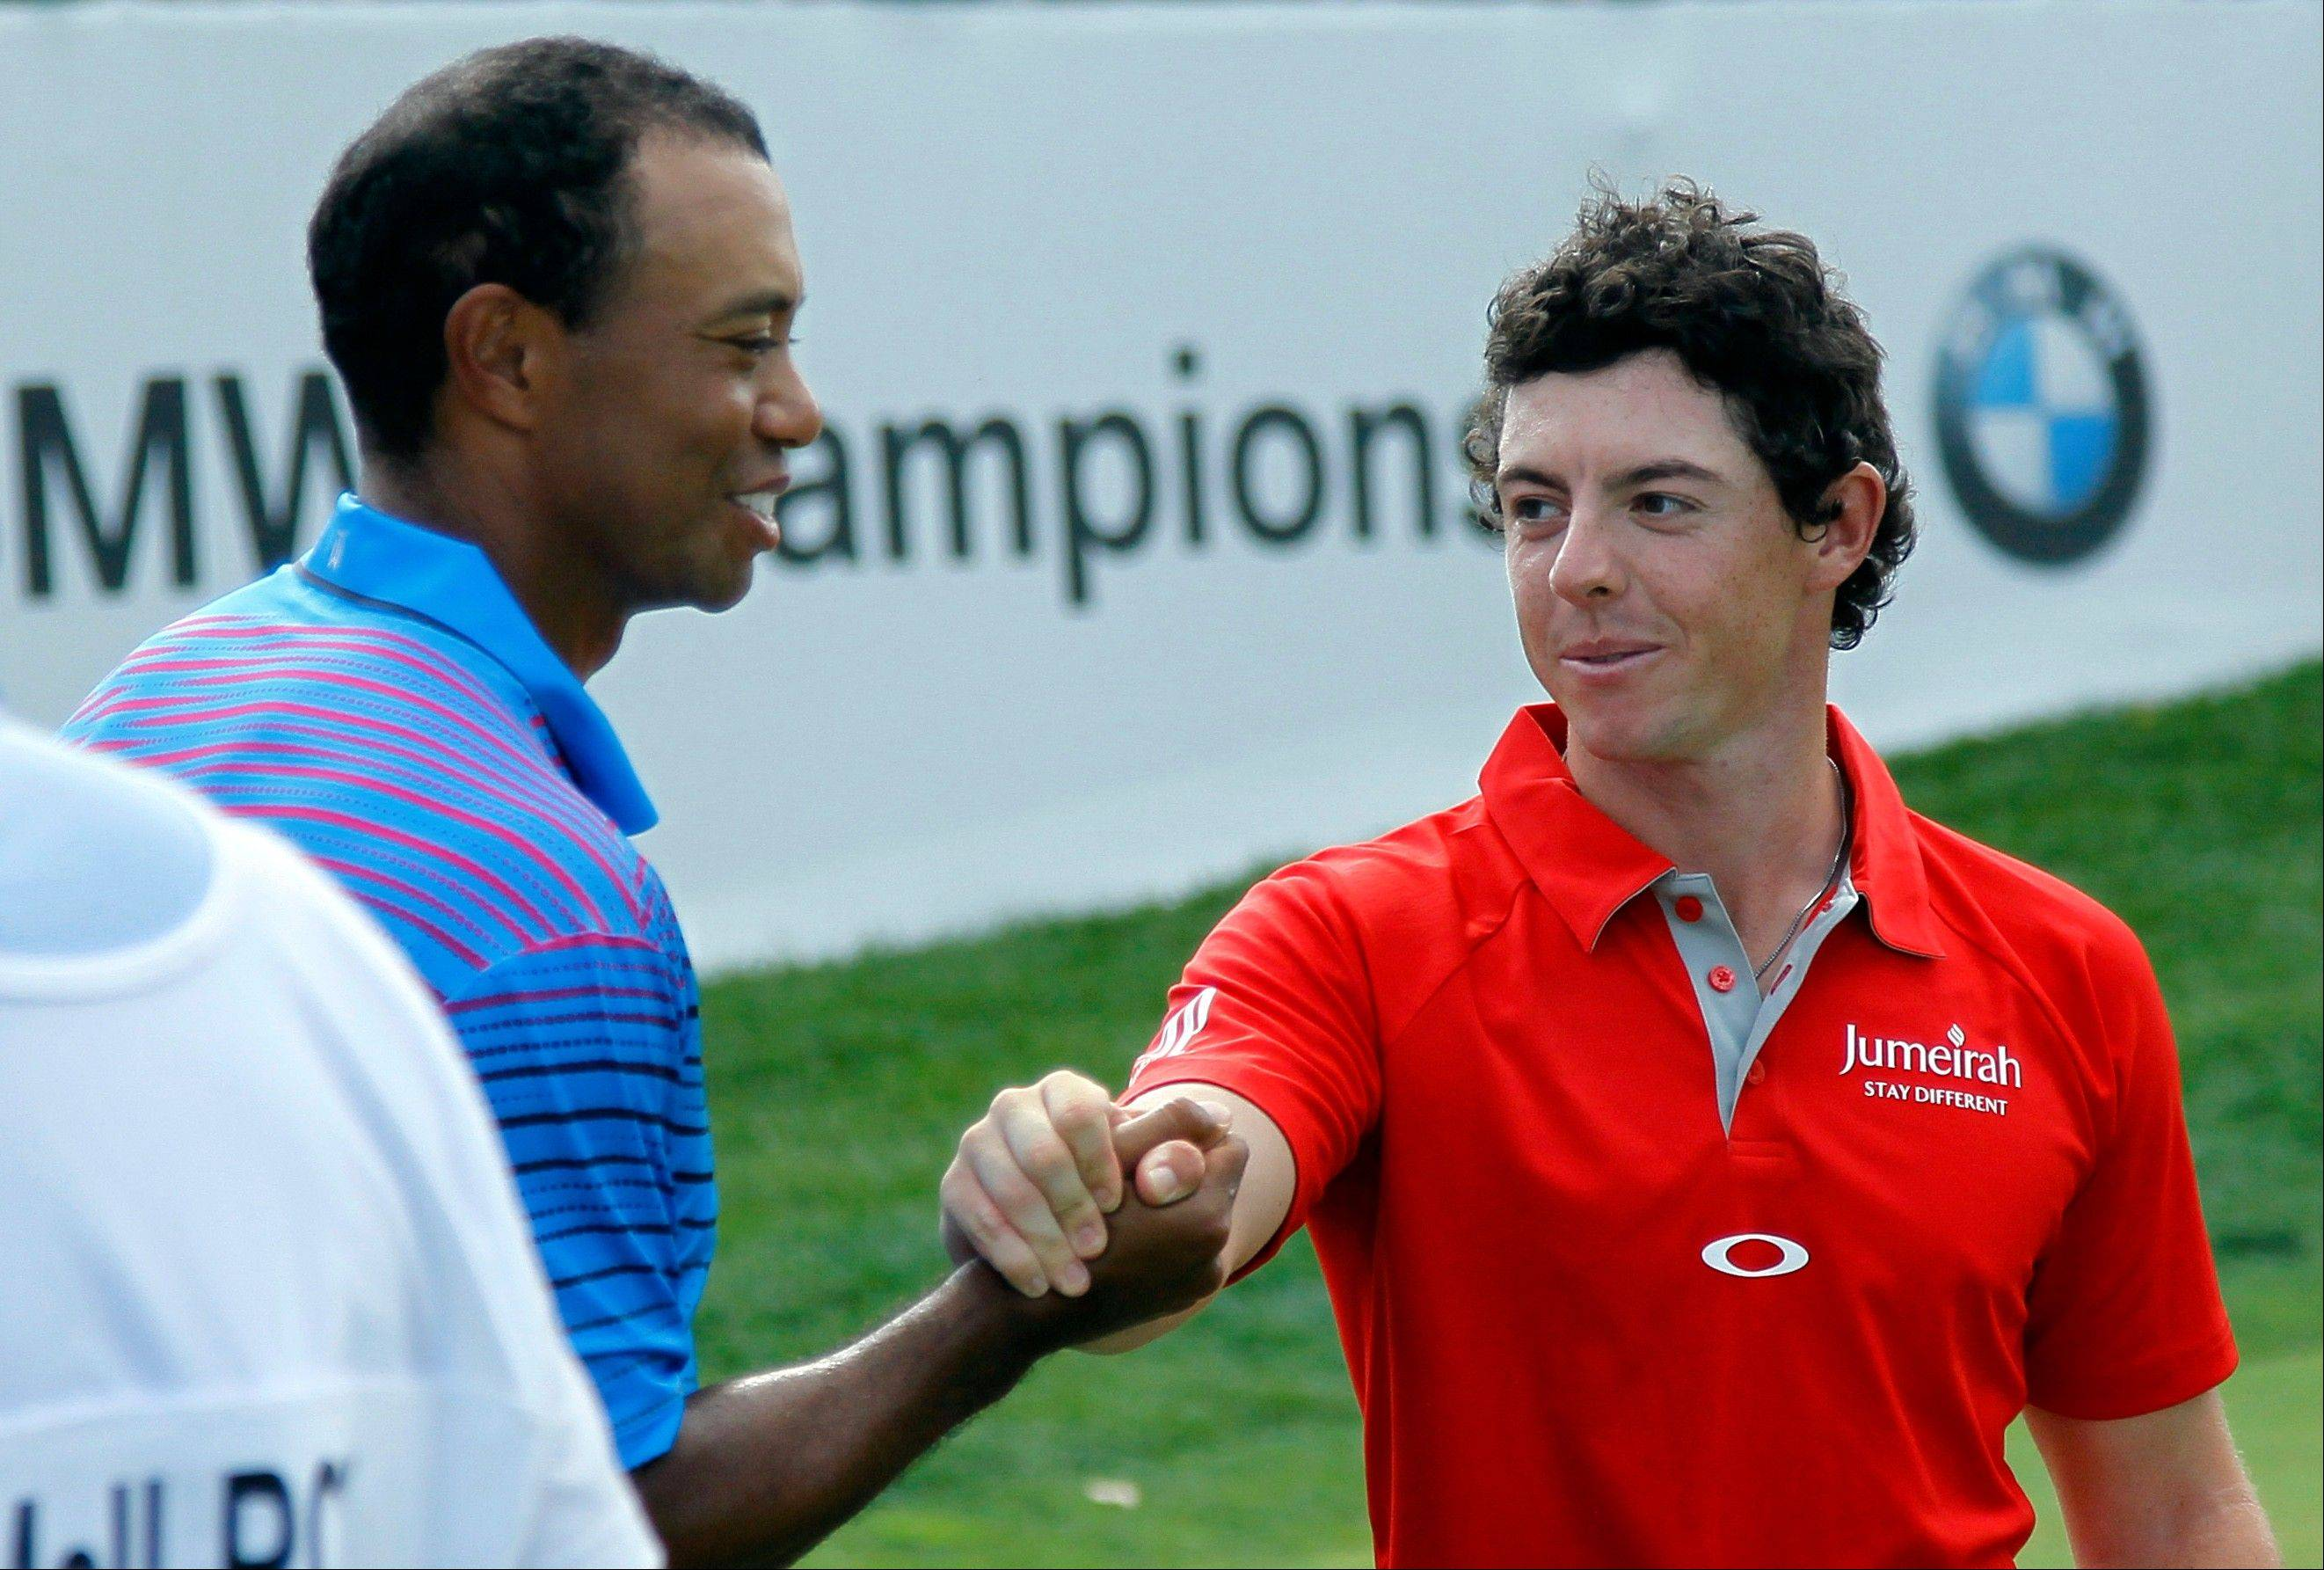 Tiger Woods and Rory McIlroy shake hands Thursday after the first round of the BMW Championship golf tournament at Crooked Stick Golf Club in Carmel, Ind.